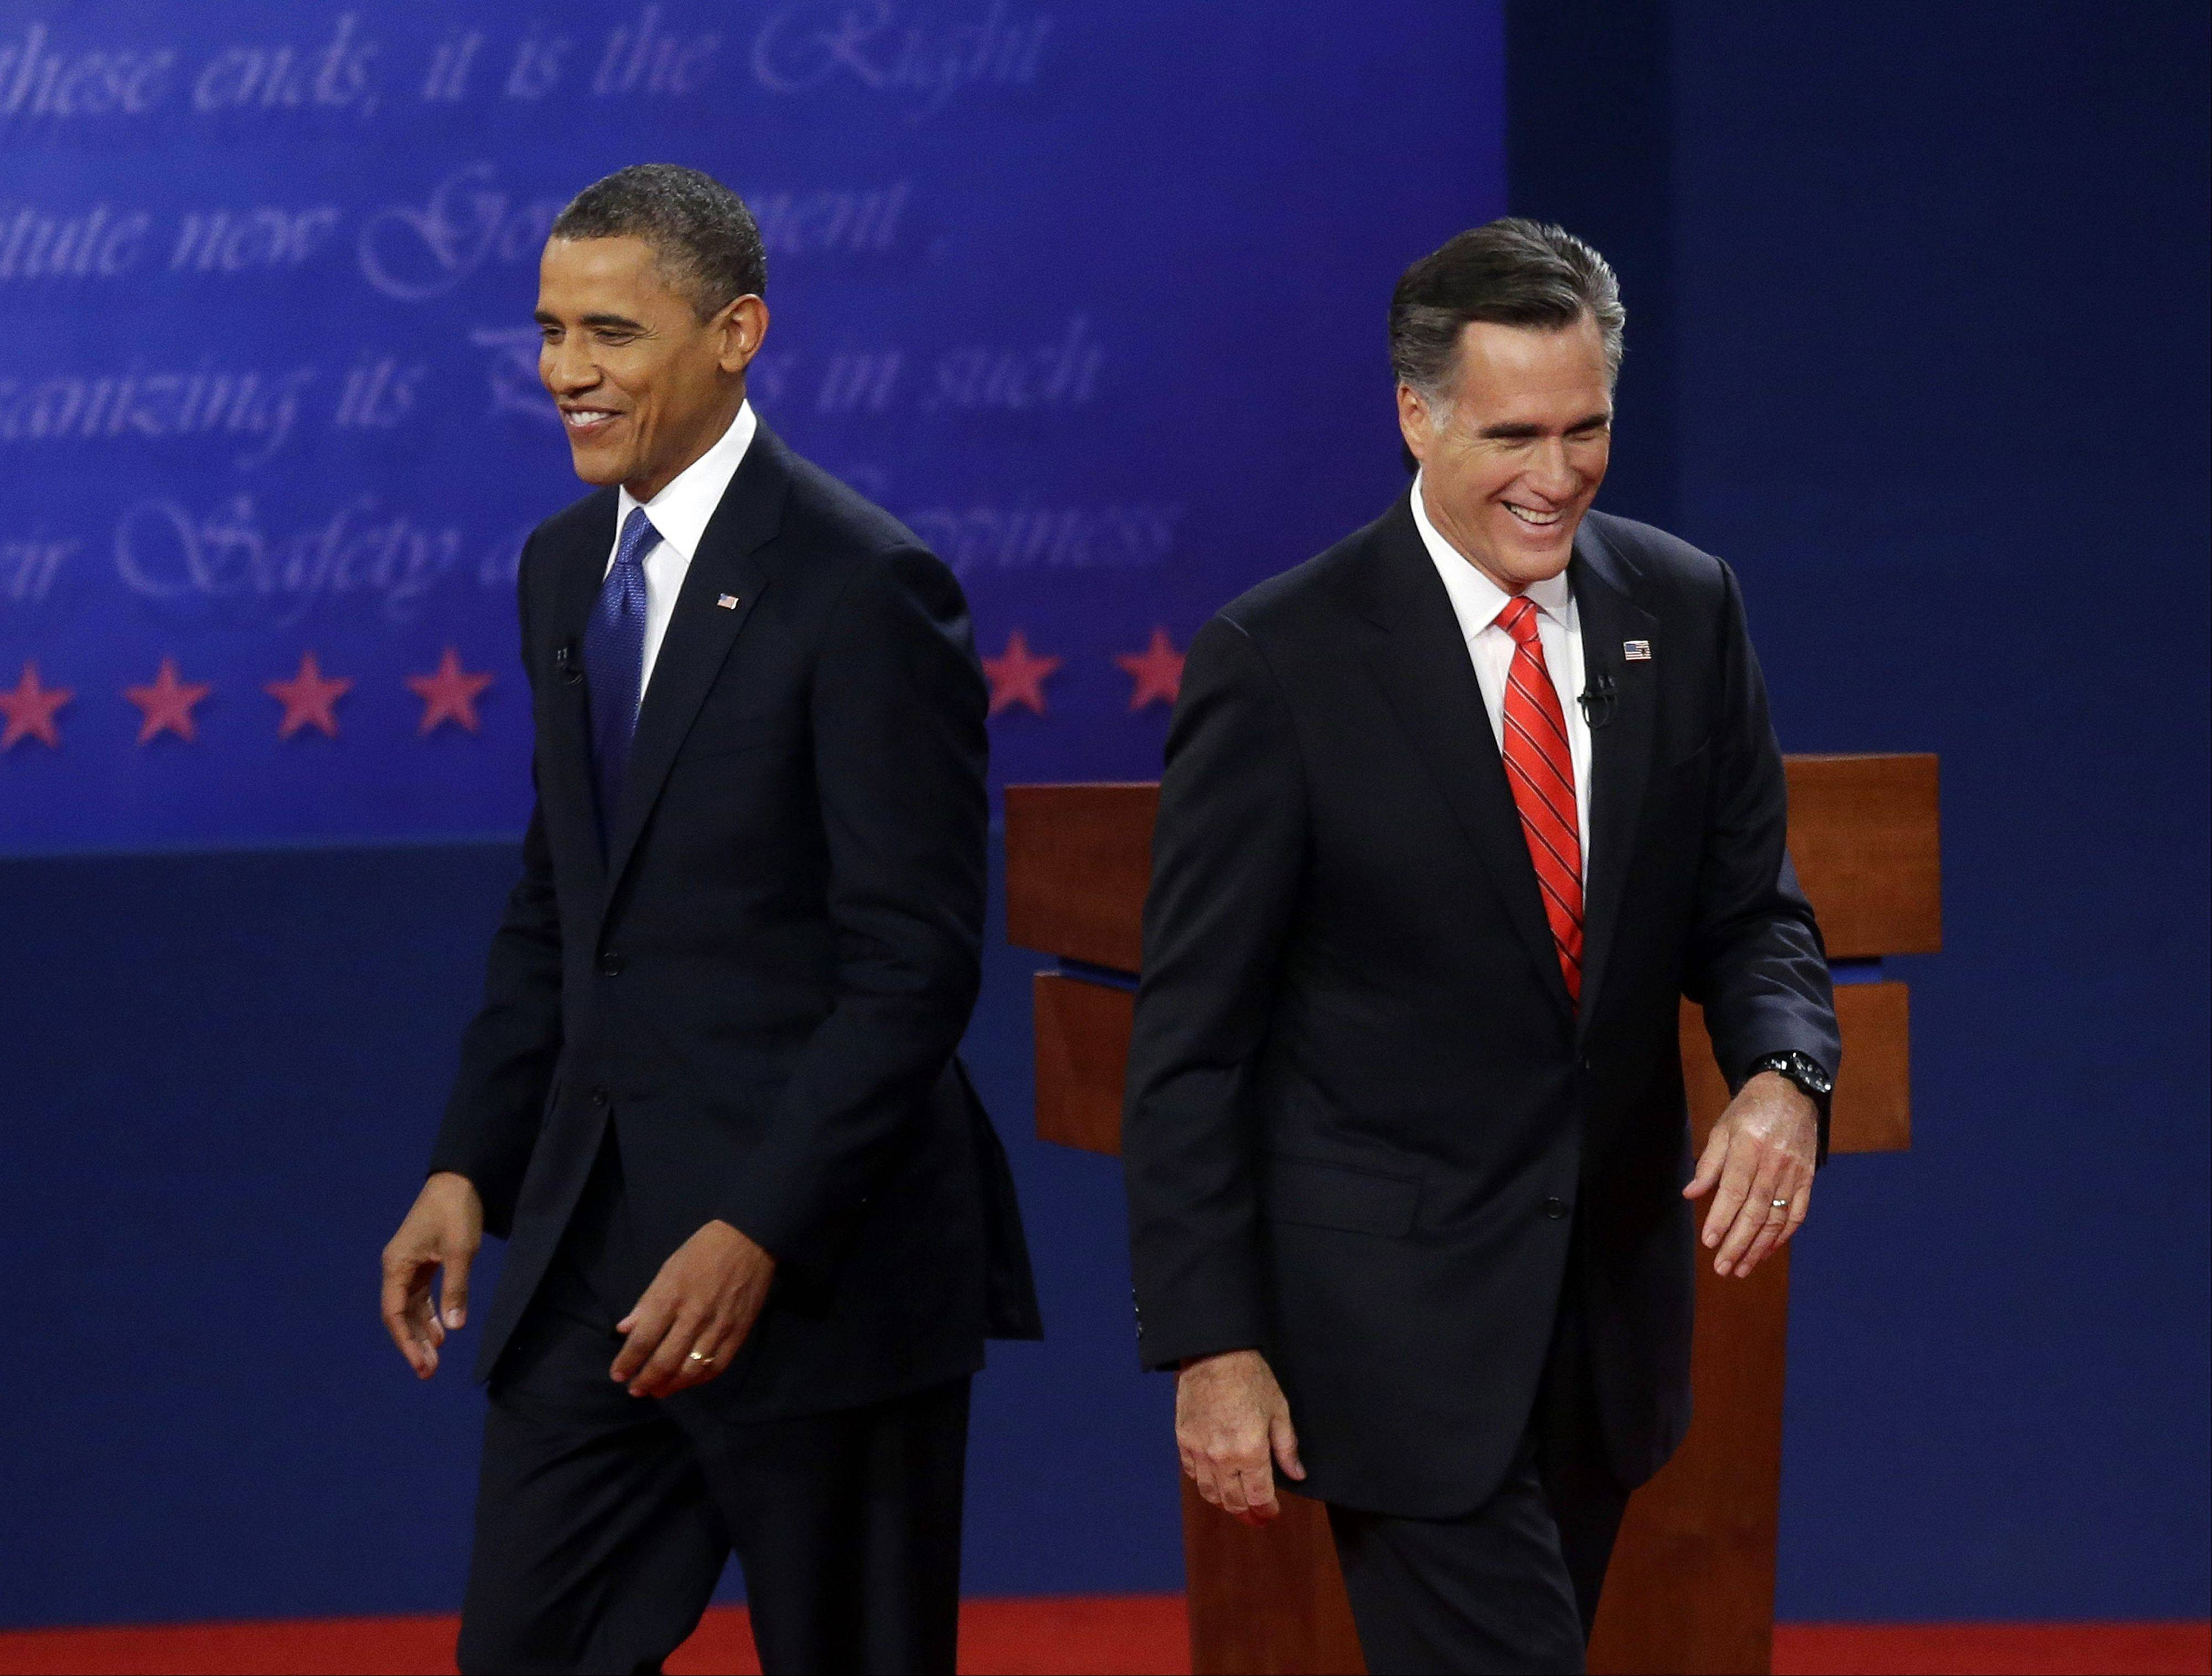 Republican presidential candidate, former Massachusetts Gov. Mitt Romney, right, and President Barack Obama, left, walk on stage at the end of their first debate Wednesday night at the University of Denver in Denver.